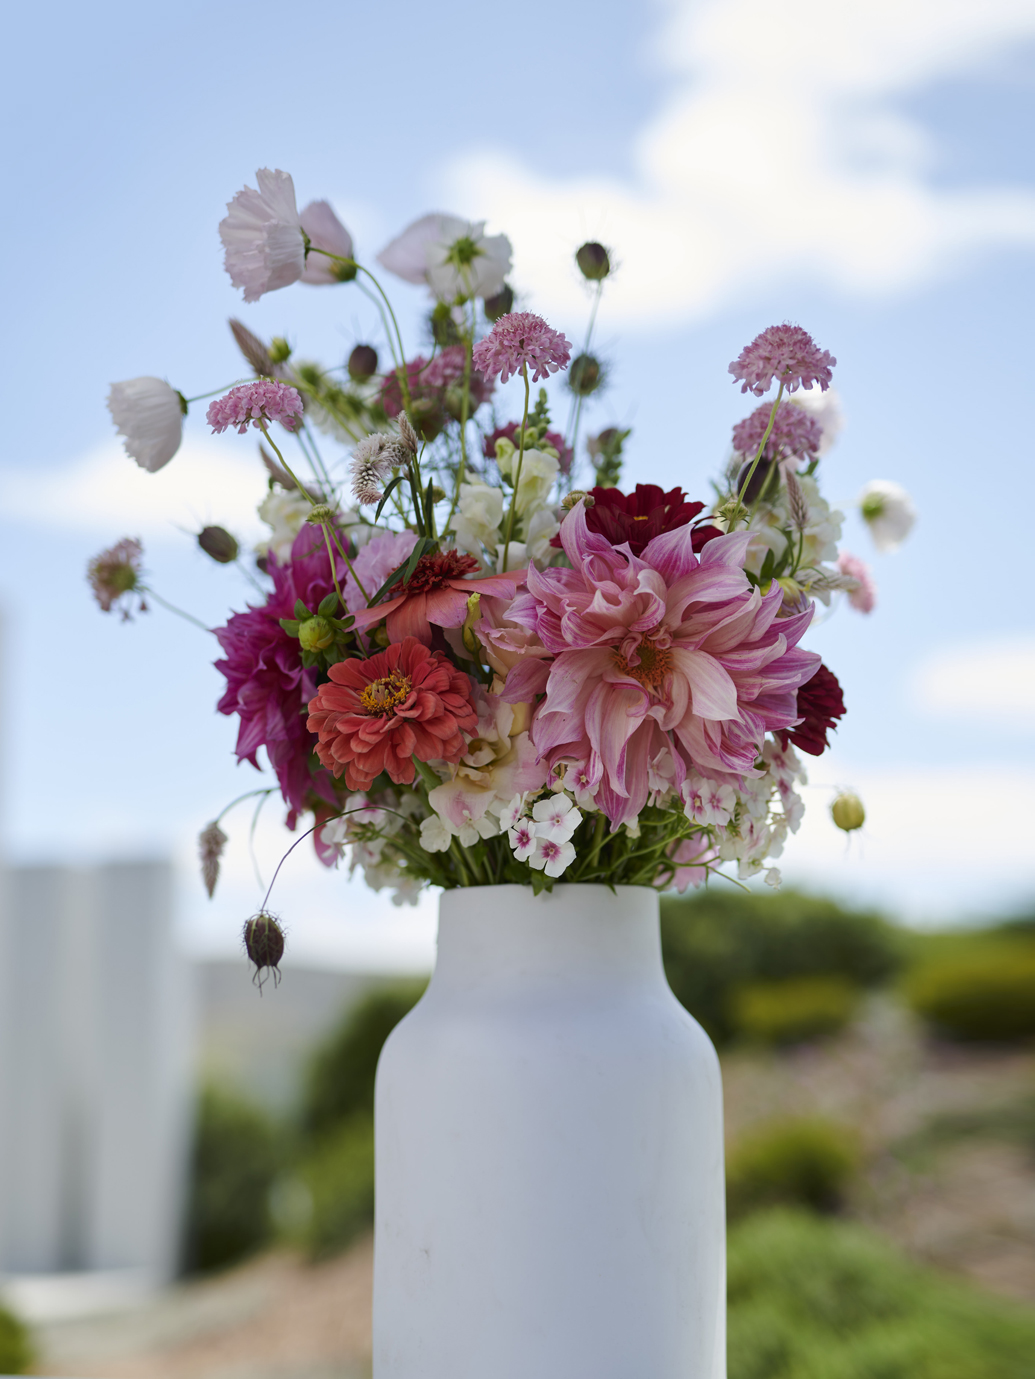 A bouquet of pink, red and white spring flowers in a white ceramic vase.